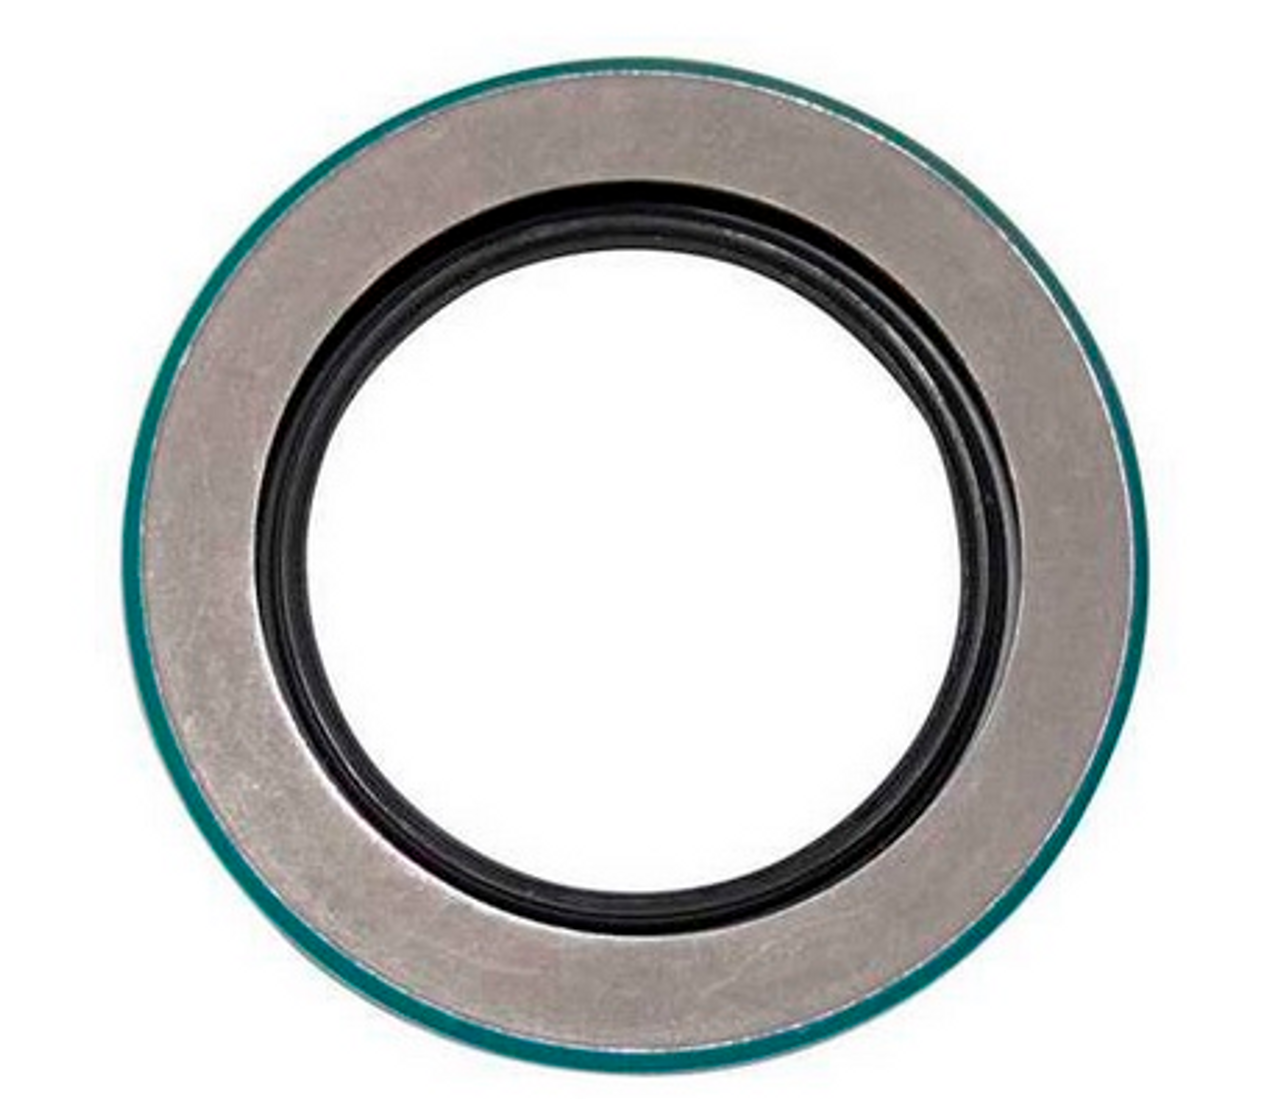 CCH019 Grease Seal For Spartan 5 lug hub